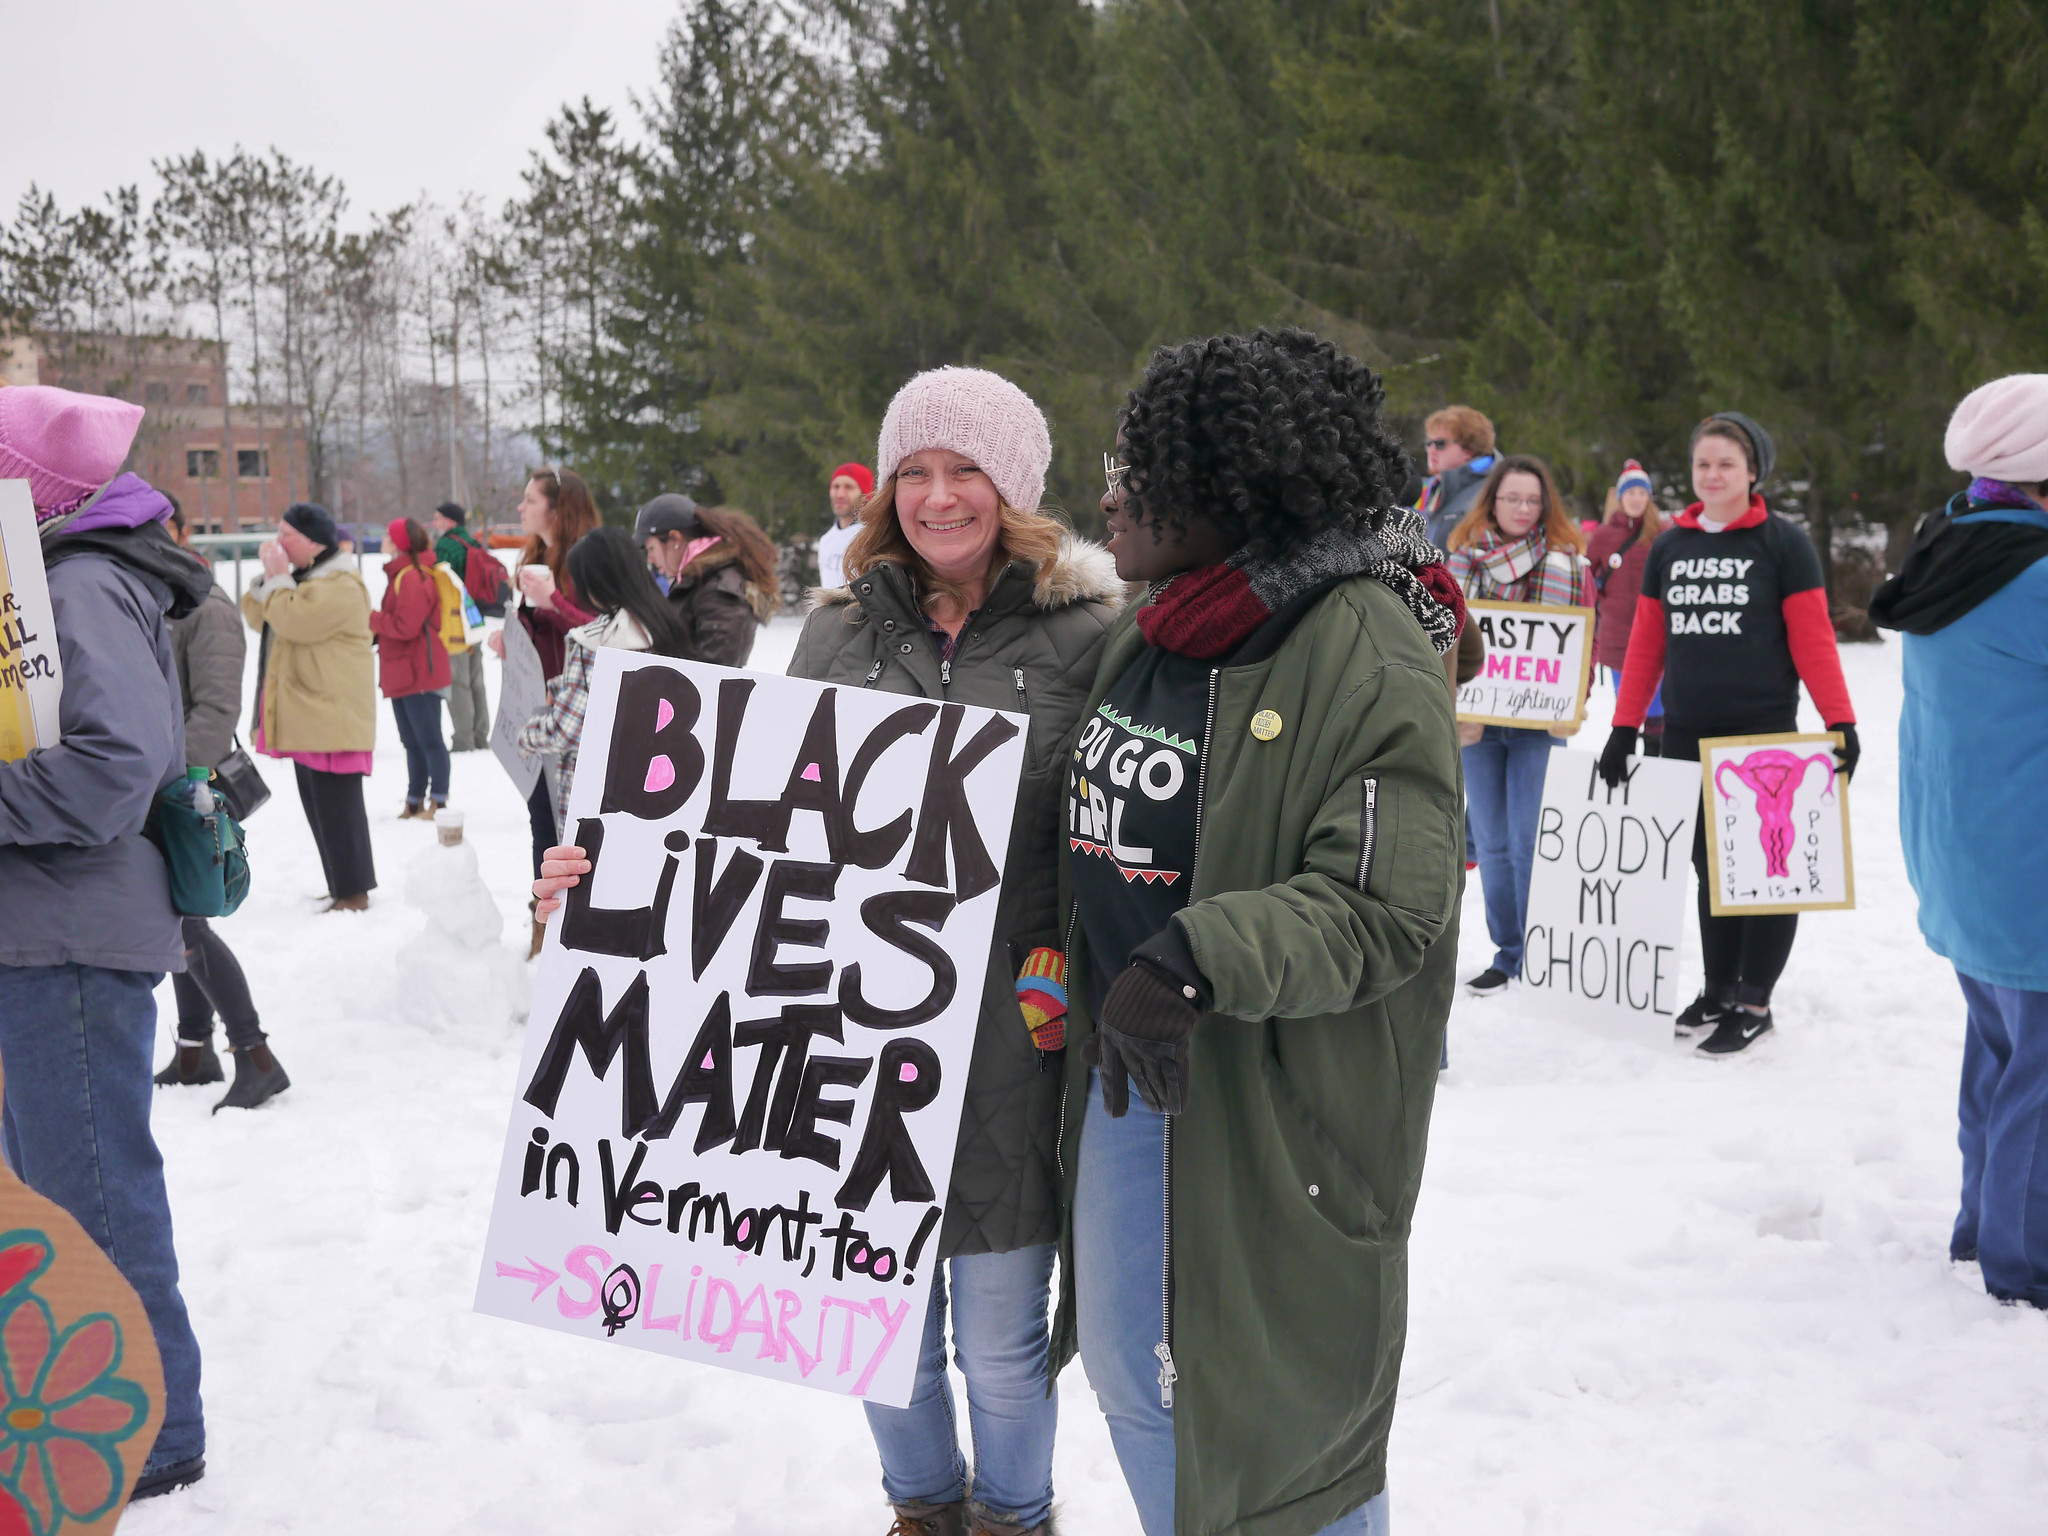 Black Lives Matter in Vermont, too!